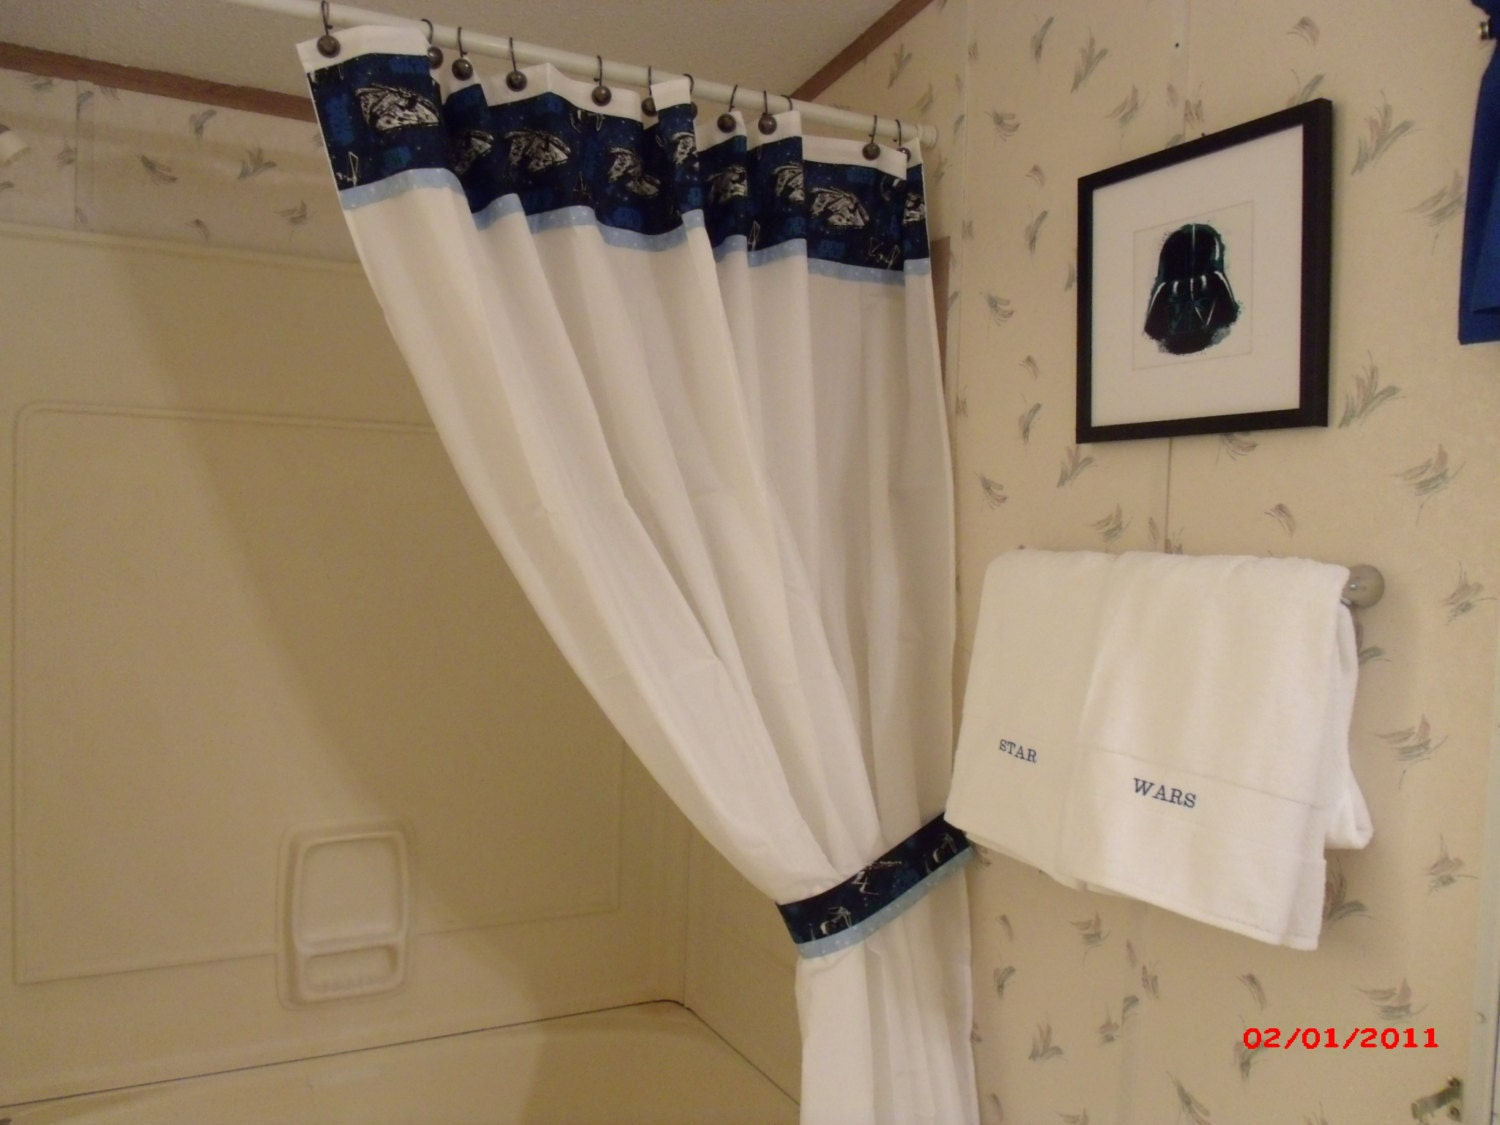 Stars wars shower curtain and towel set by bigcreekcottage on etsy